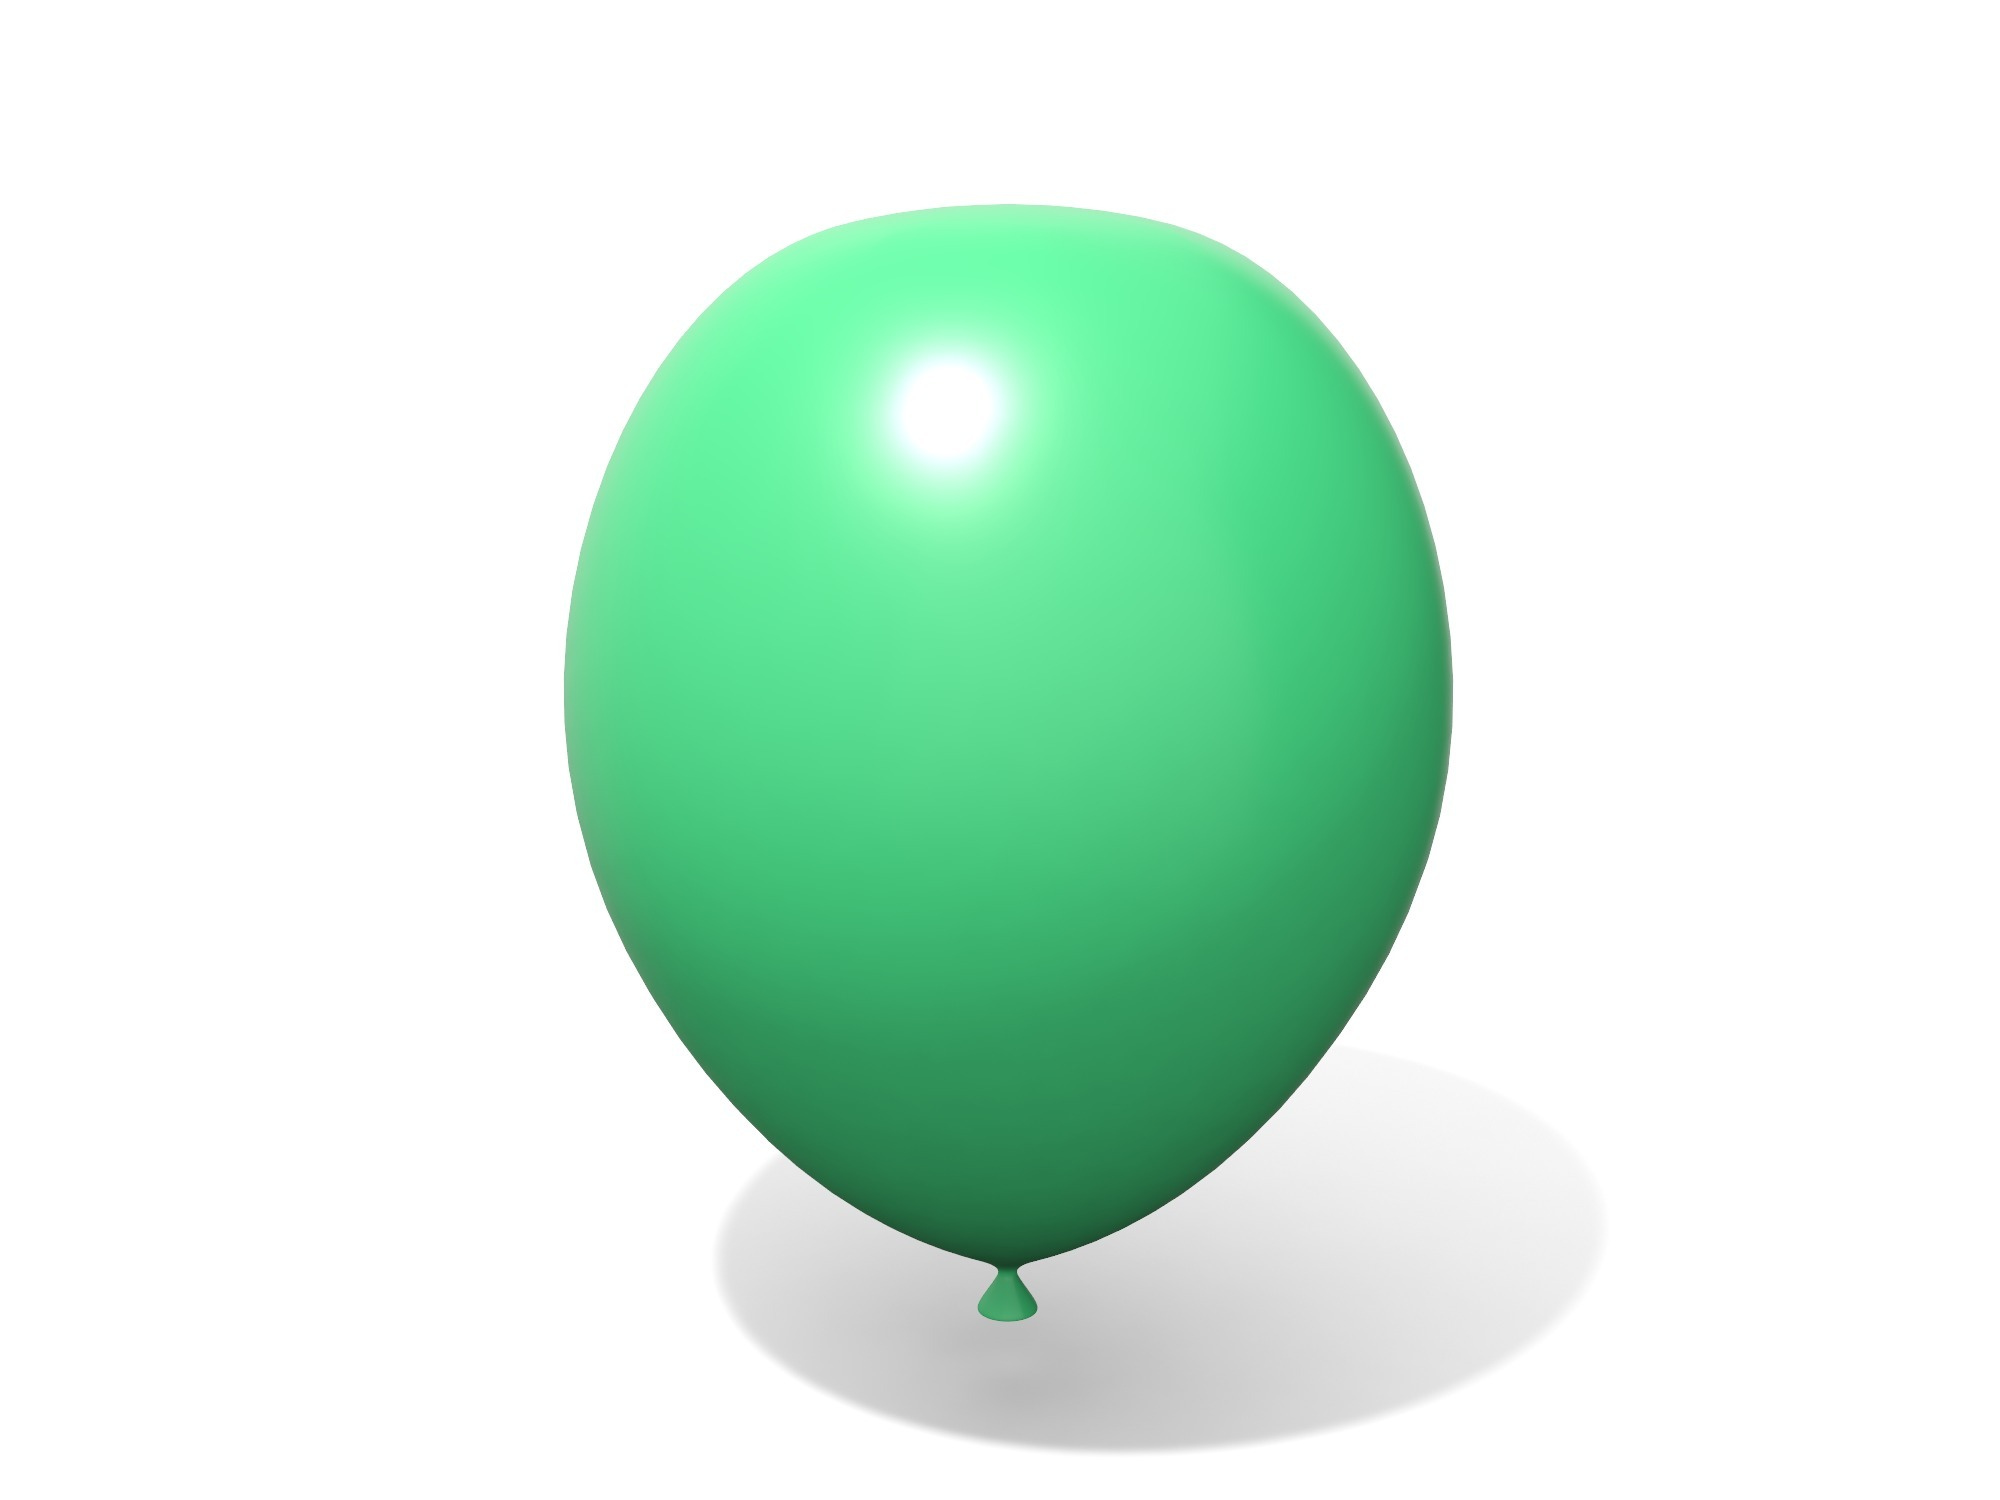 Classic balloon - 3D design by assets Nov 5, 2018